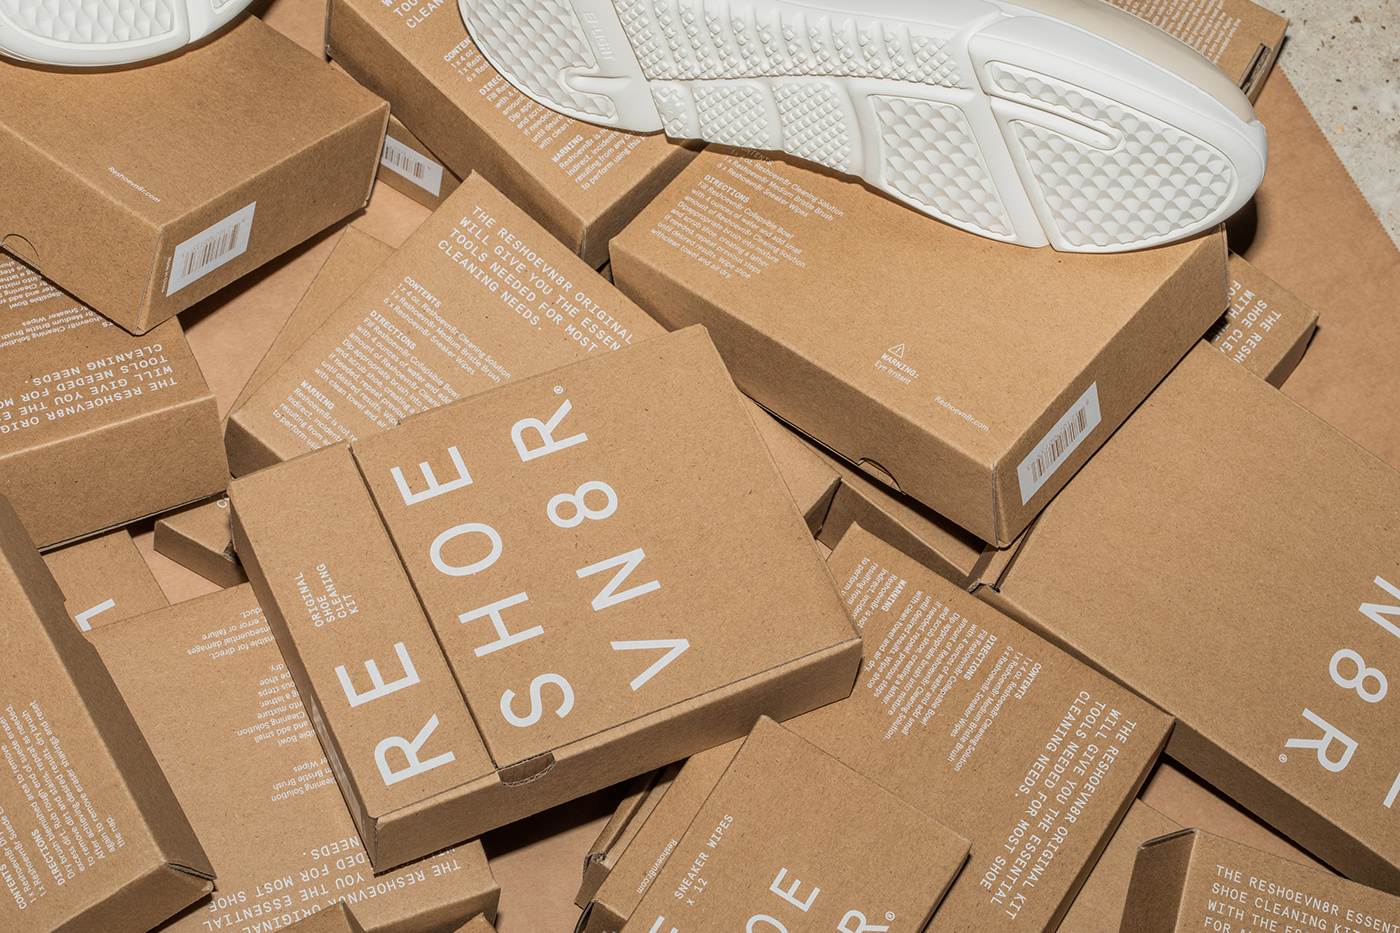 Reshoevn8r Shoe Cleaning Kits stacked up with white sneakers